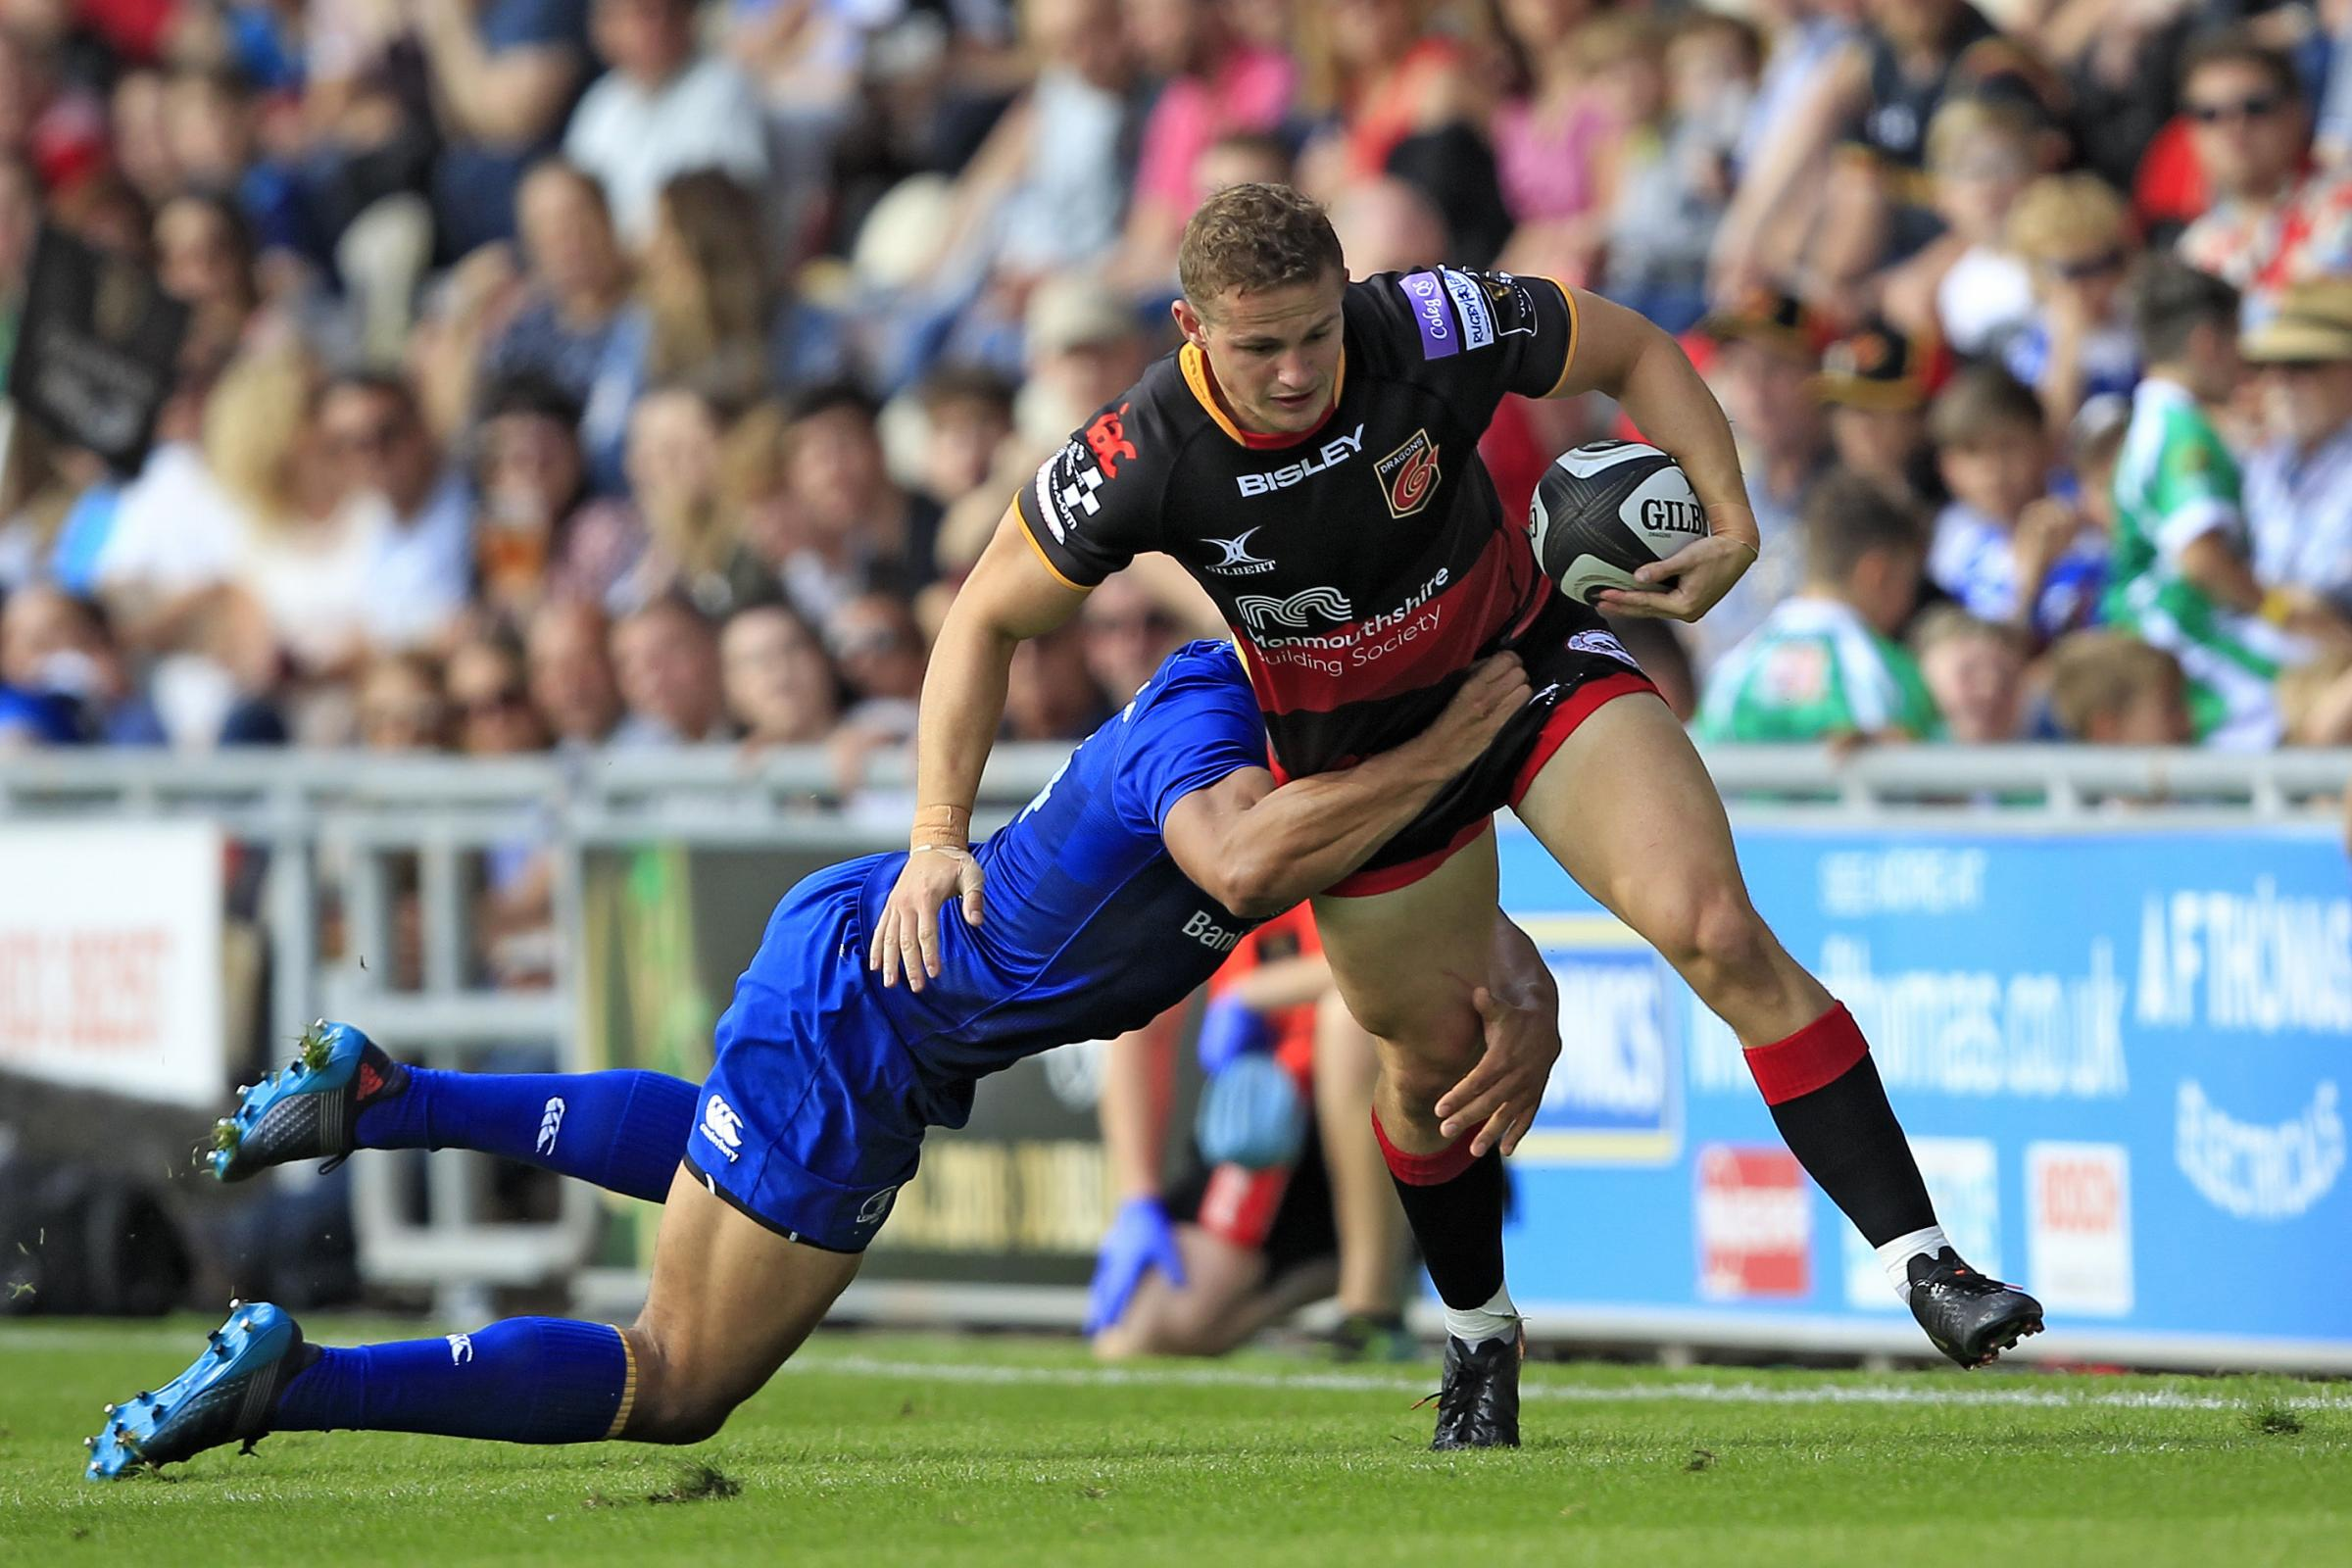 ON THE RUN: Hallam Amos wants the Dragons to apply a finishing touch